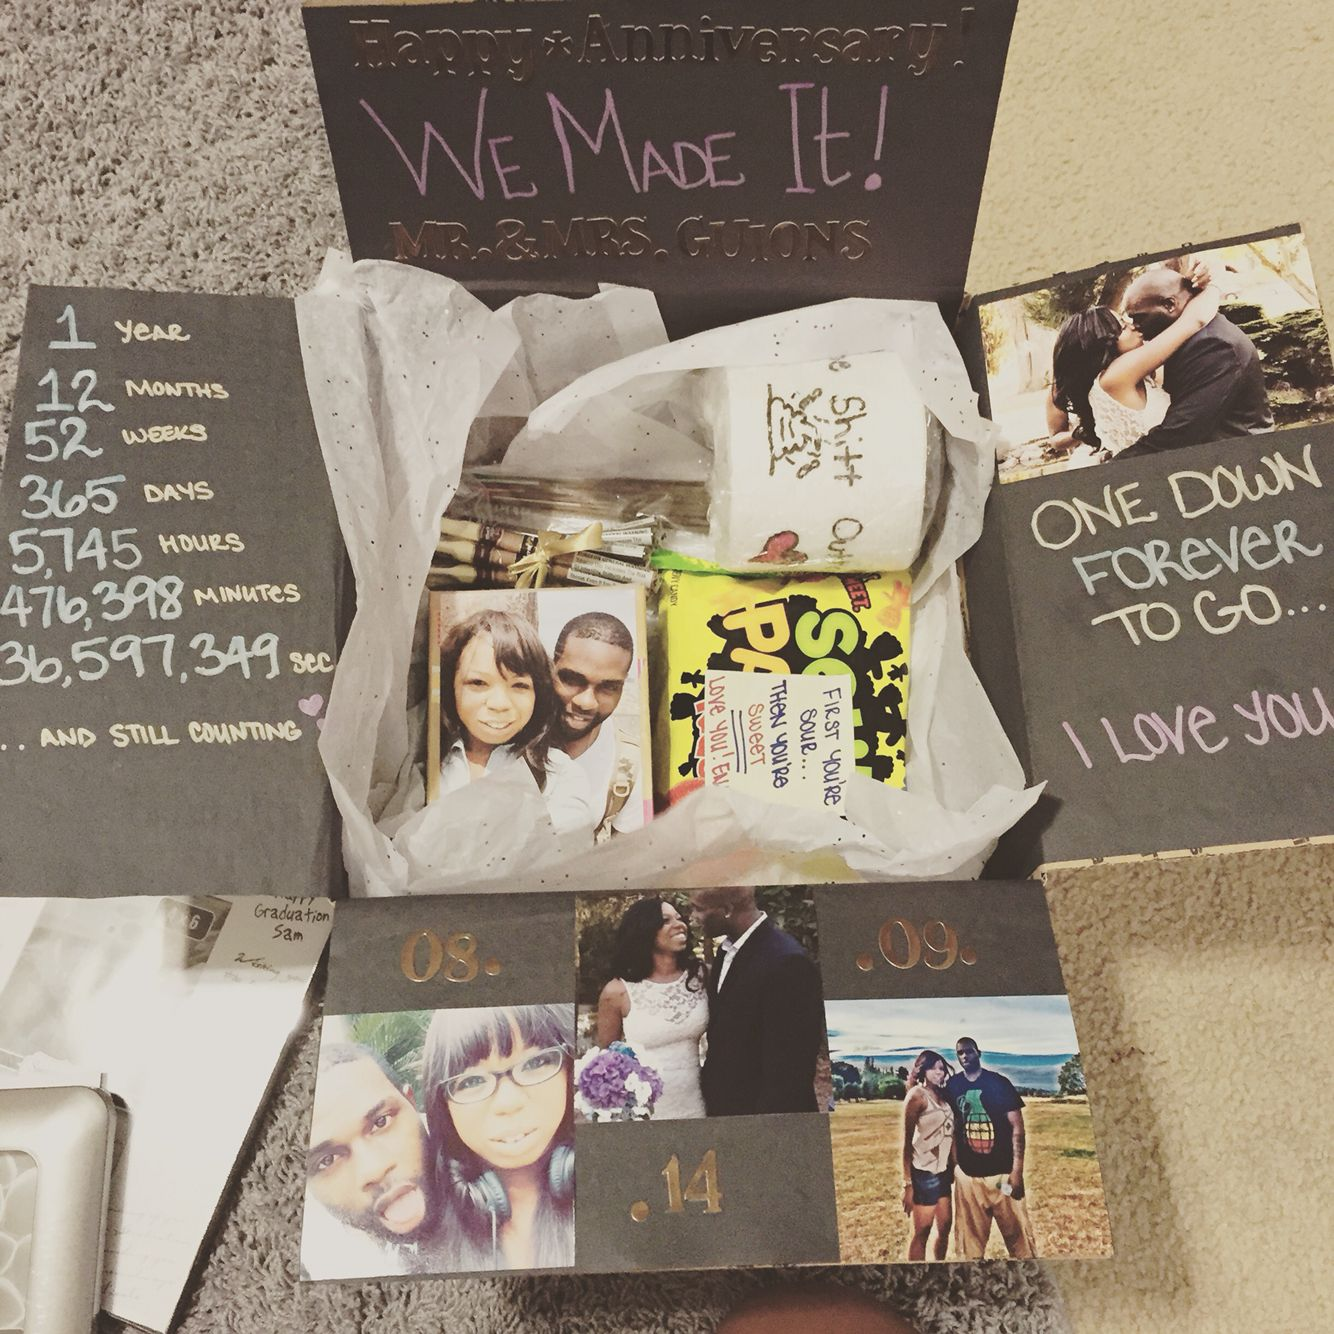 Diy Wedding Anniversary Gifts: One Year Anniversary Care Package